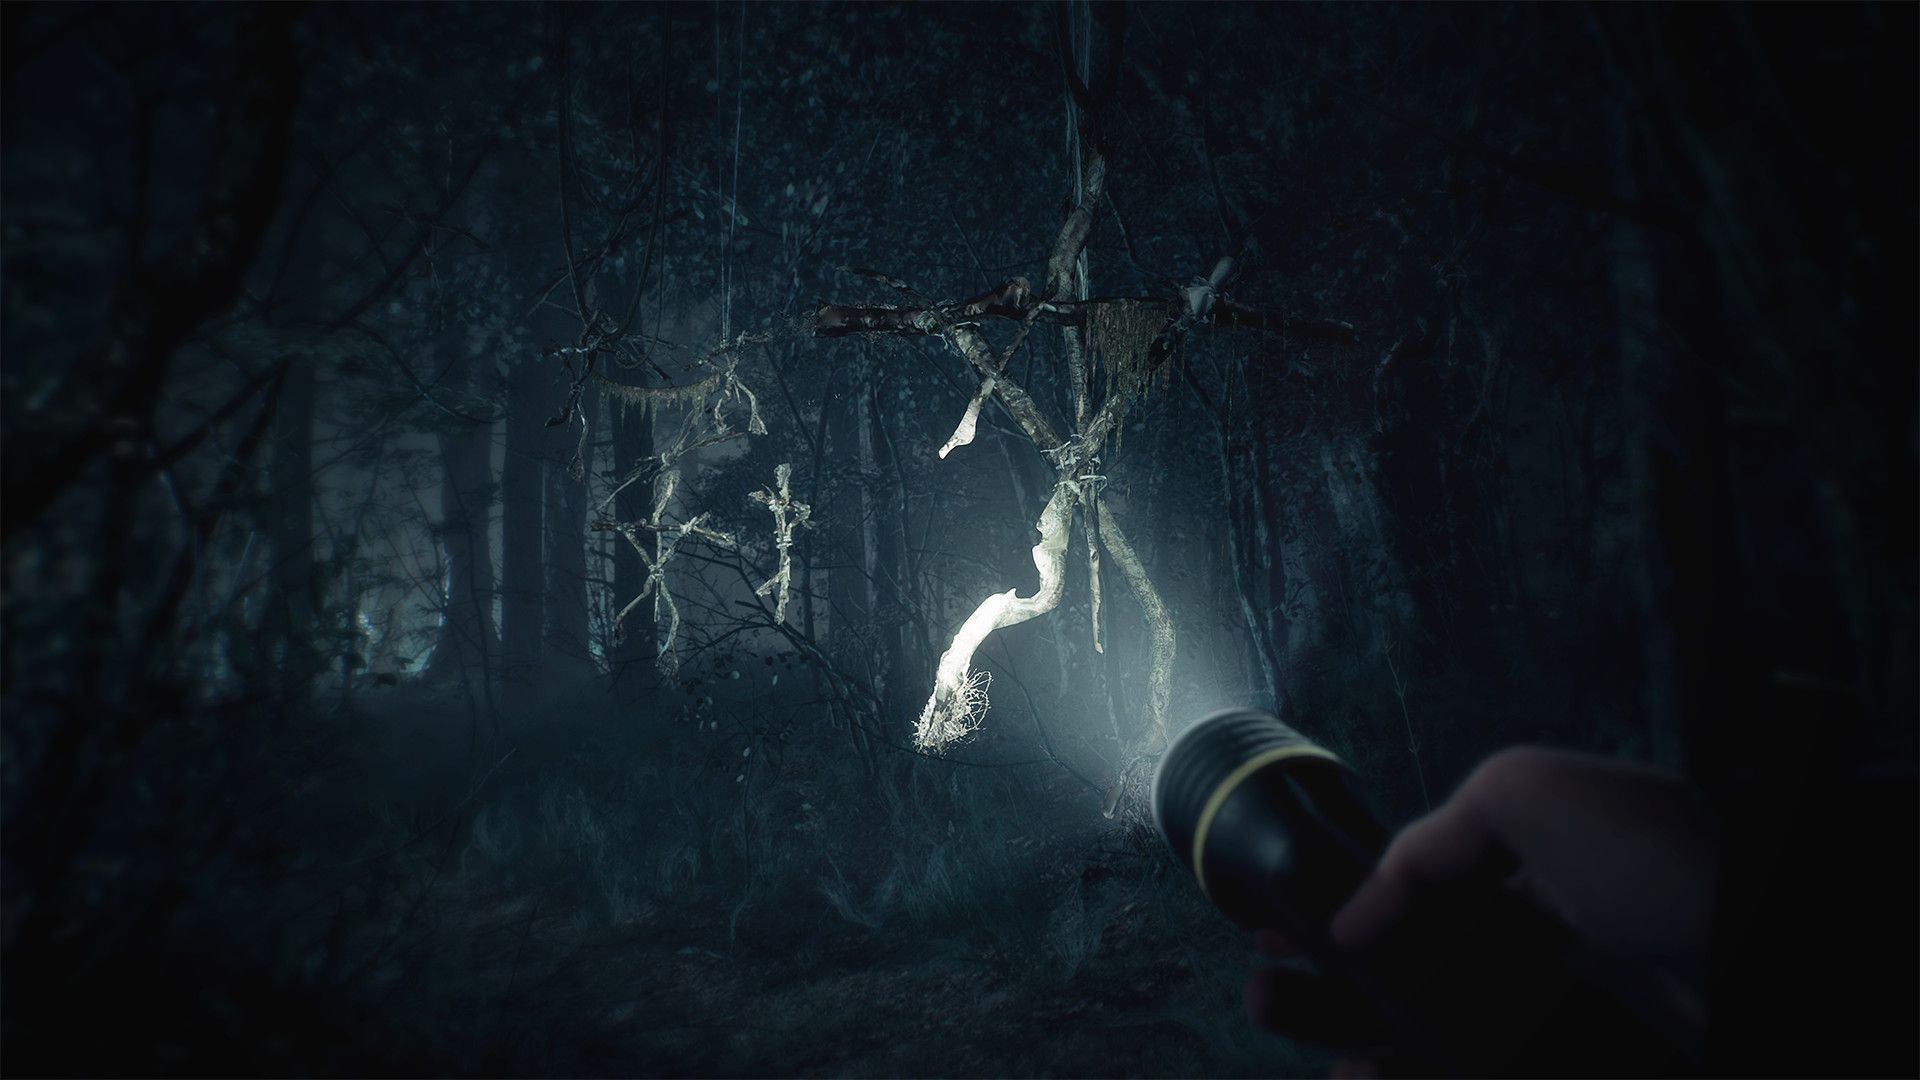 20 Terrifying Pc Horror Games To Play With The Lights Off Pcworld